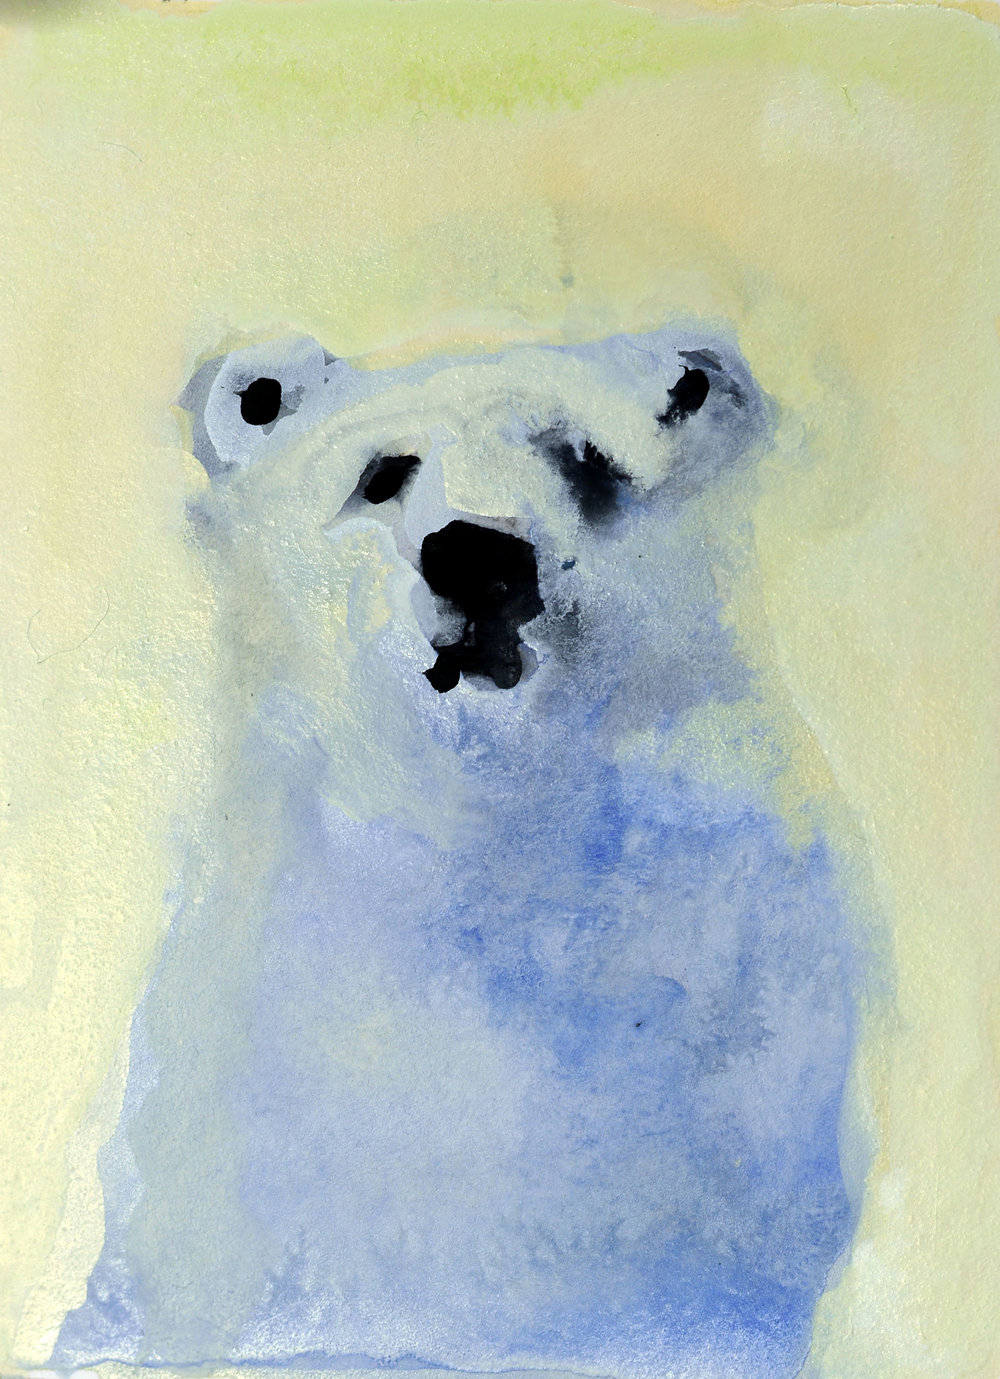 polar bear no. 4_4x3 inset on 11x7.5 paper.jpg